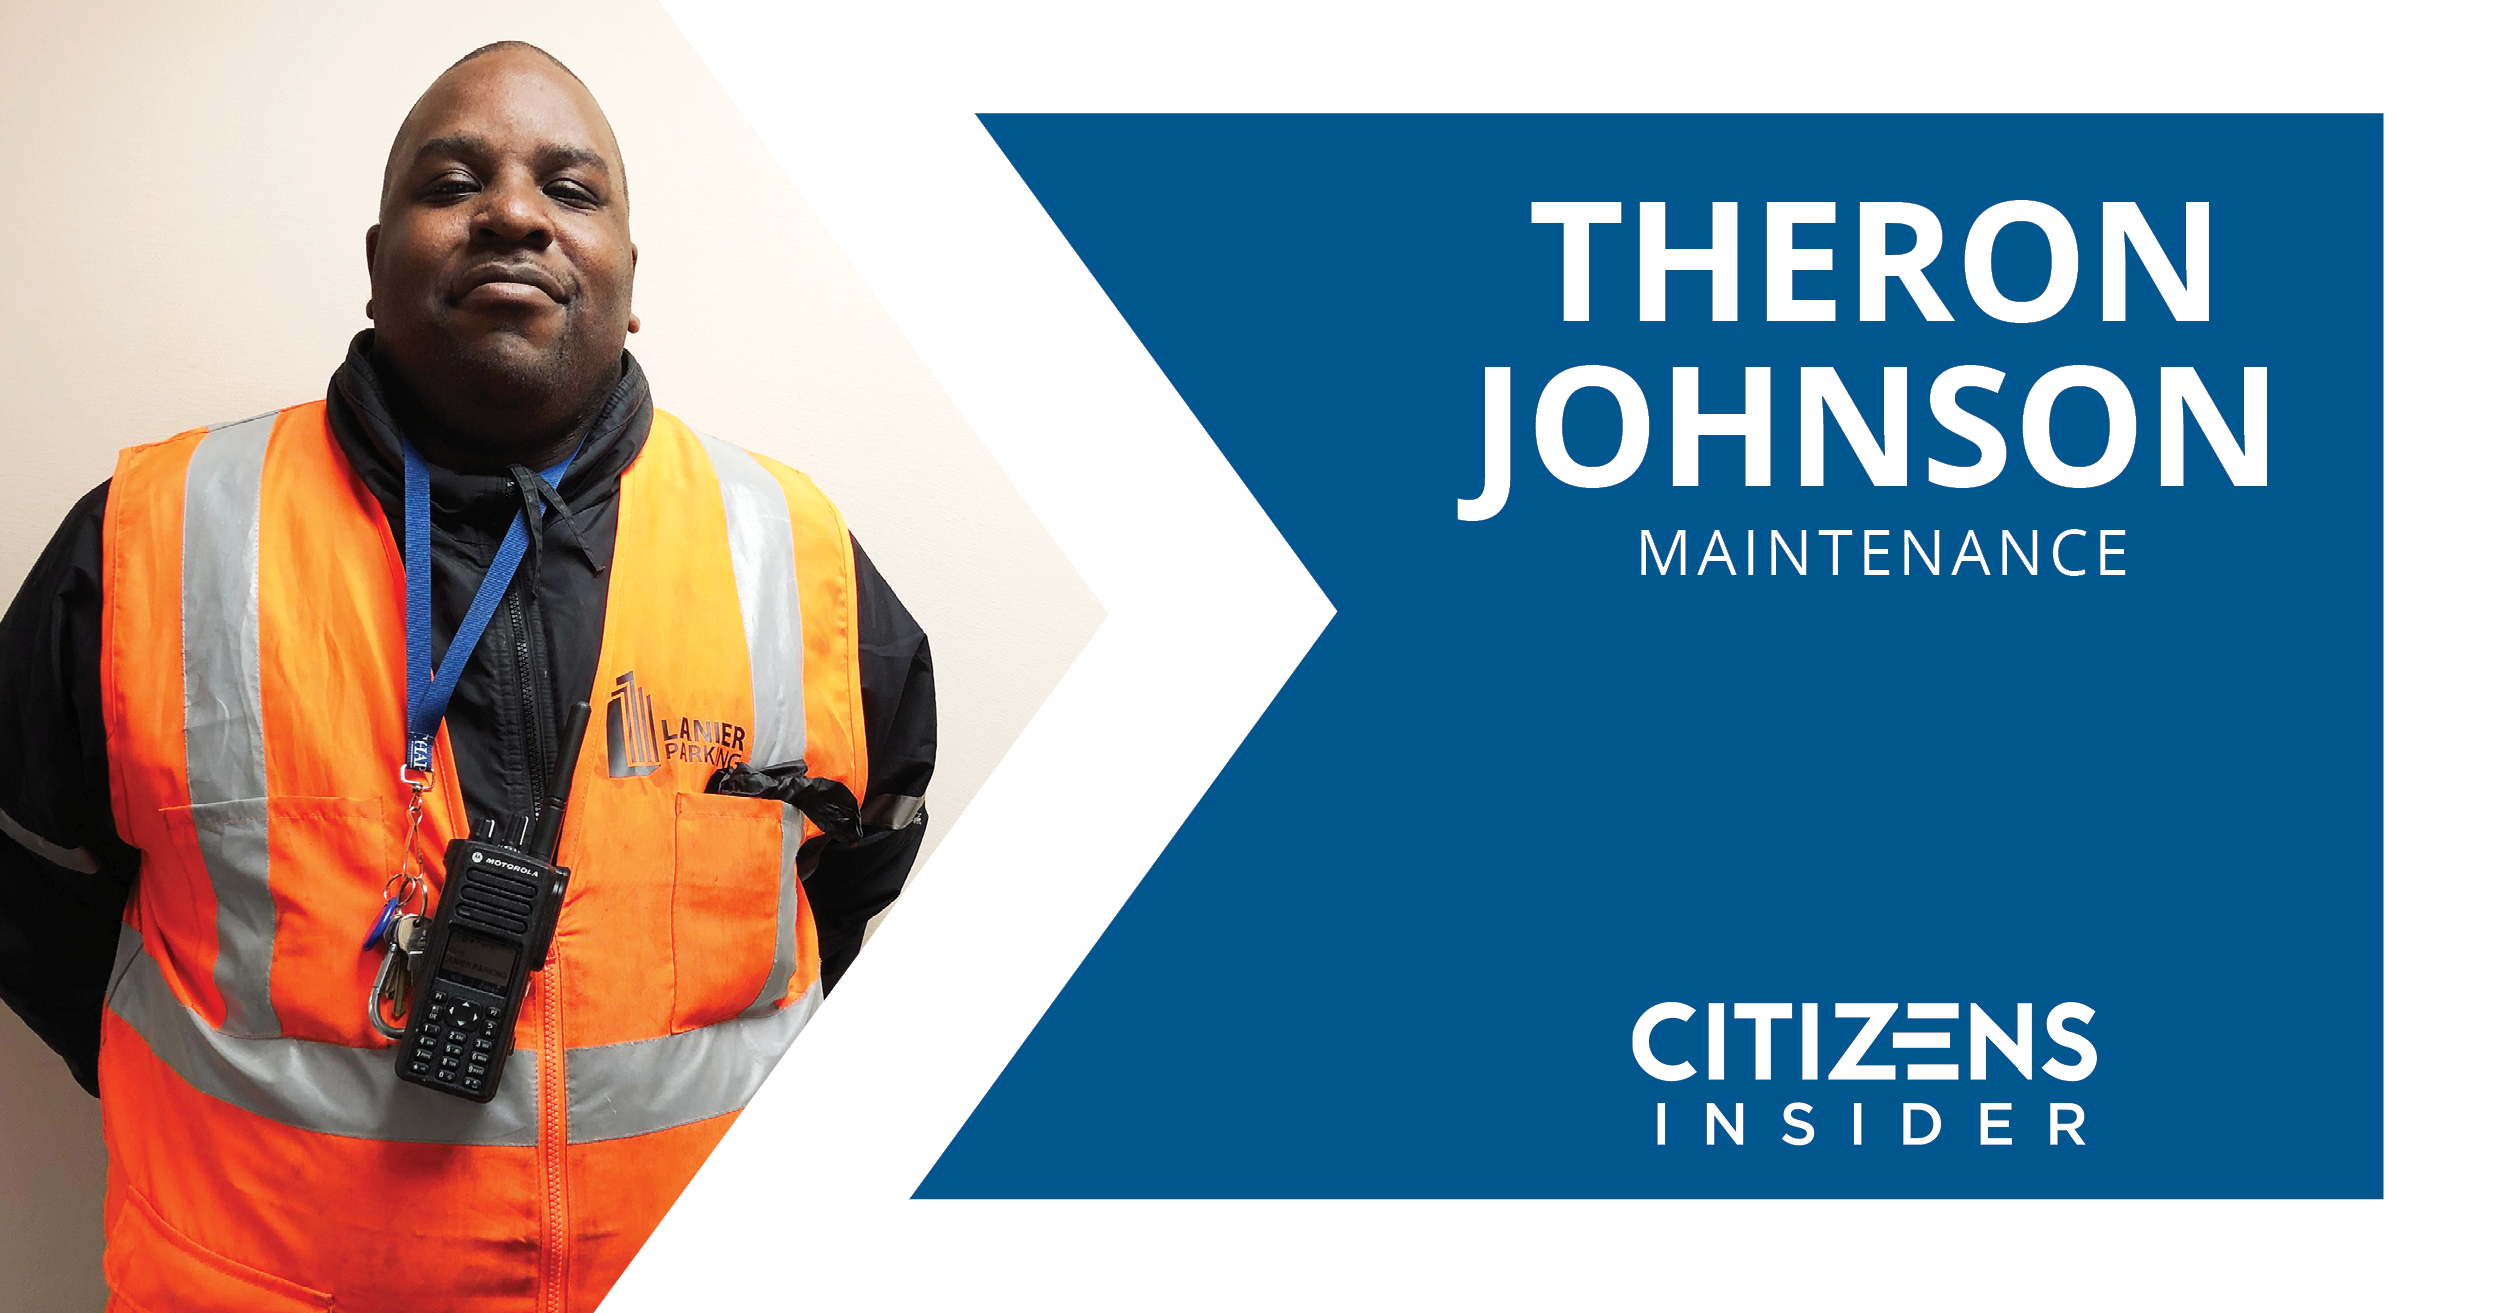 Citizens Insider: Theron Johnson